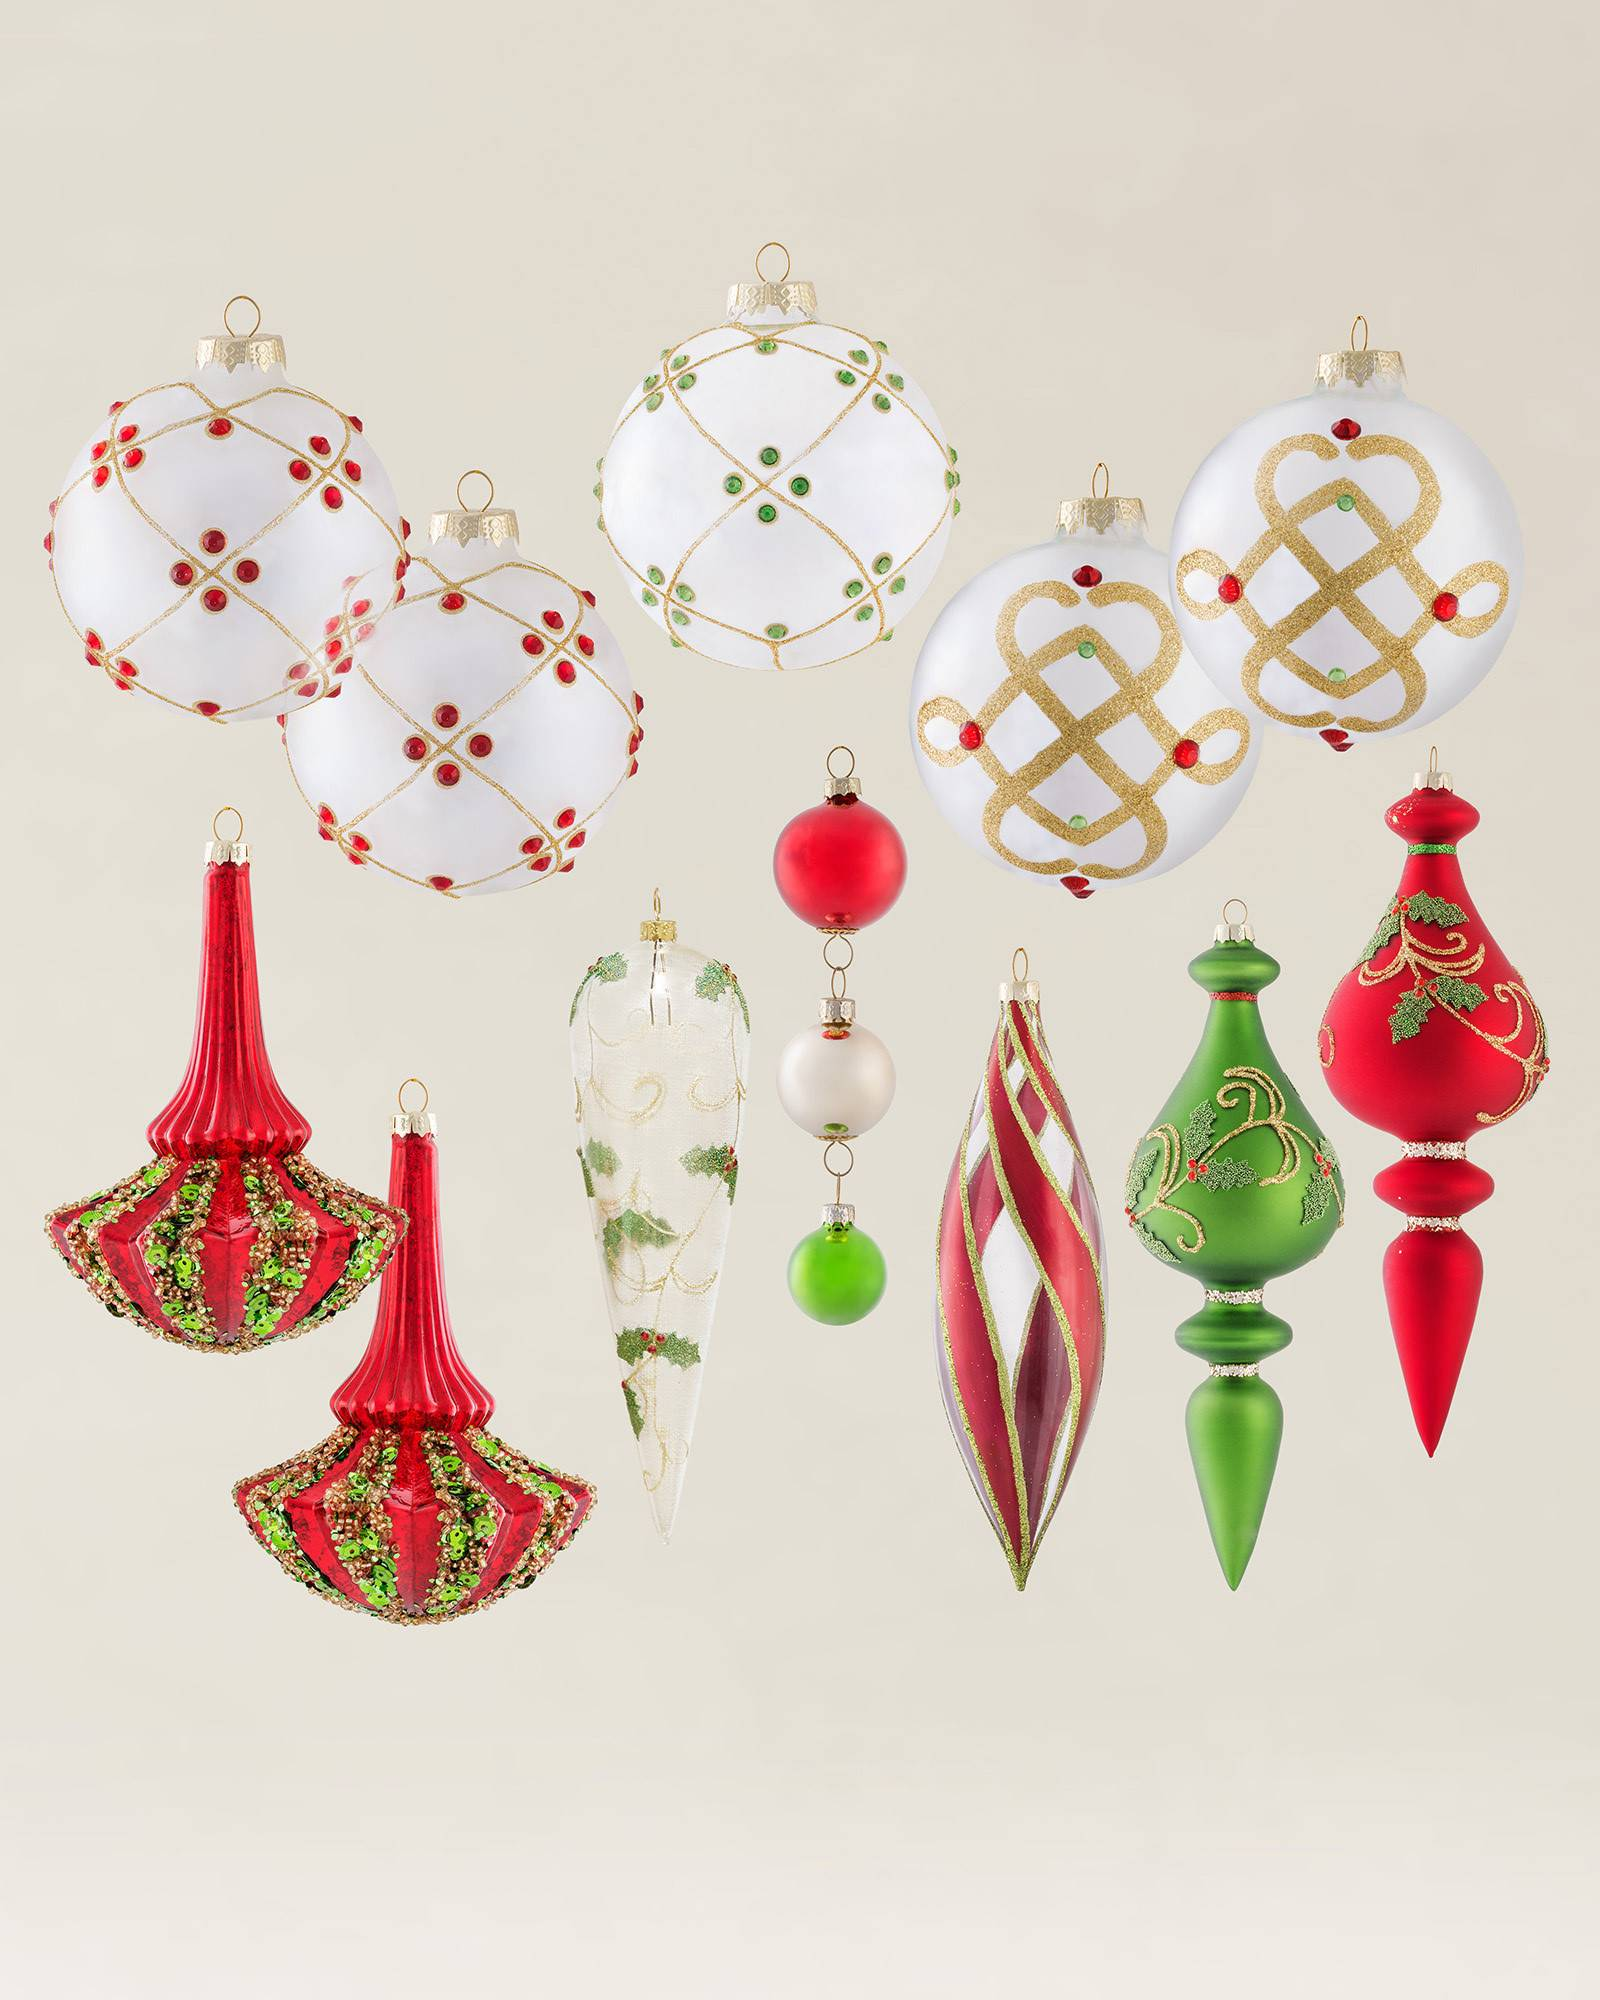 Set of 12 Mistletoe and Holly Ornaments | Balsam Hill